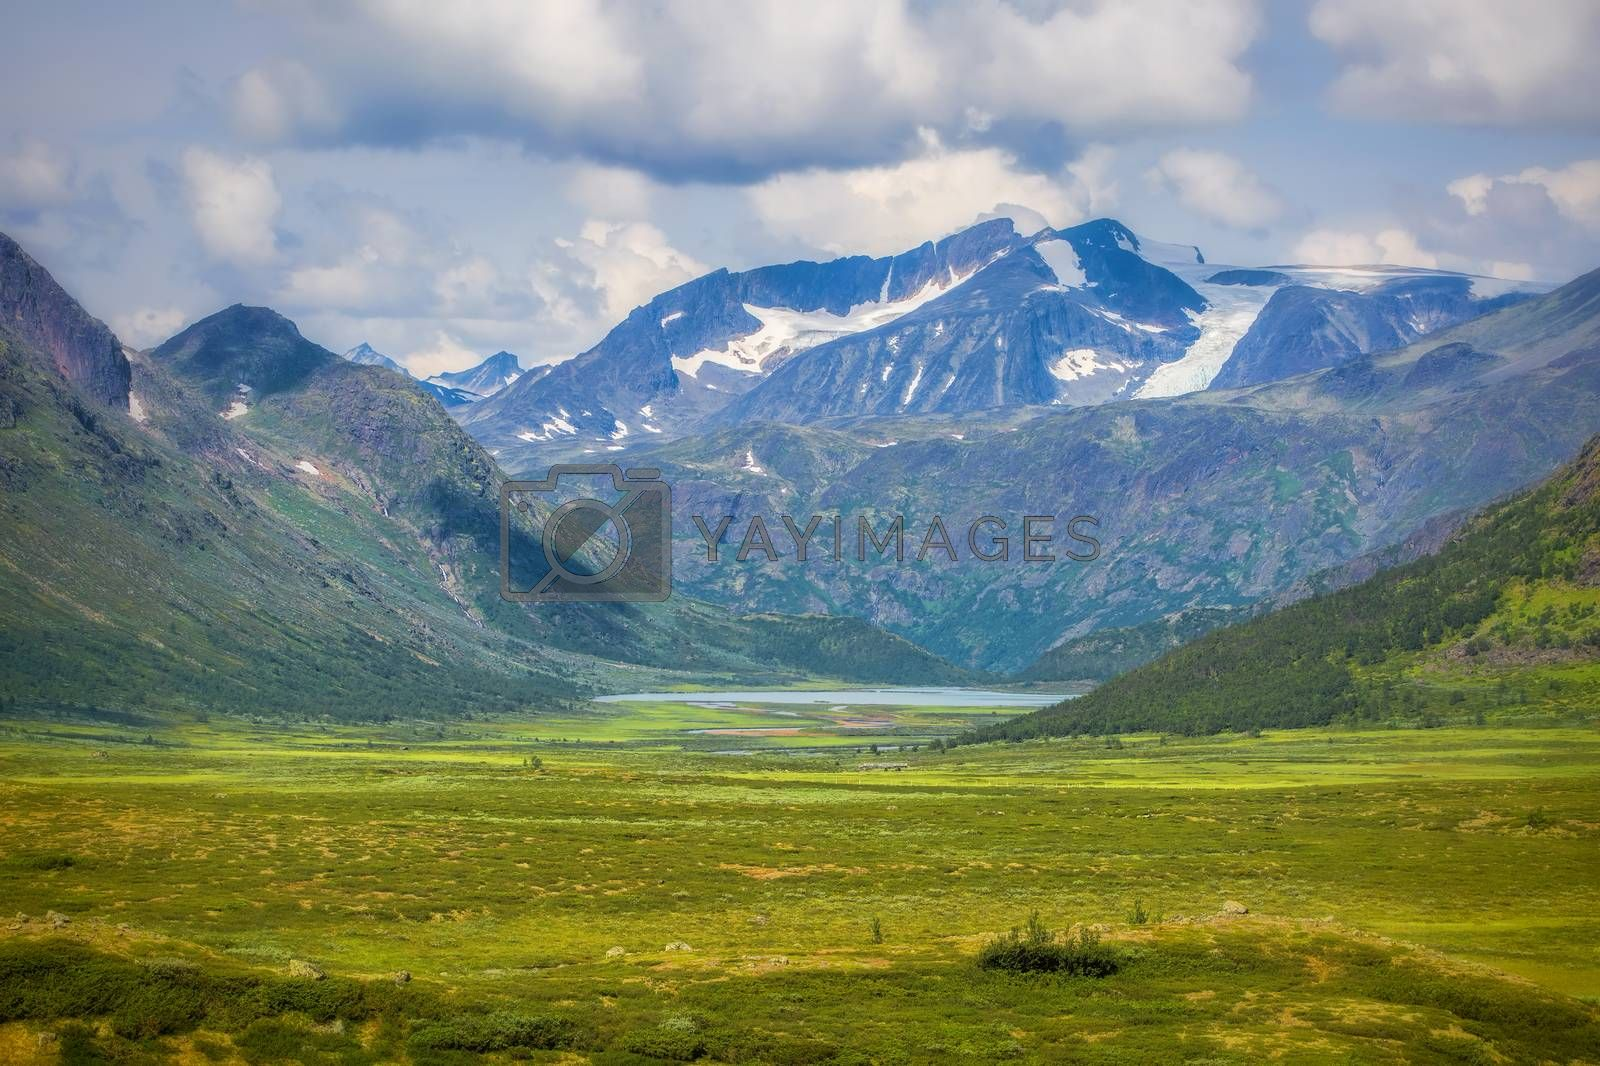 Royalty free image of Stryn in Norway by kjorgen